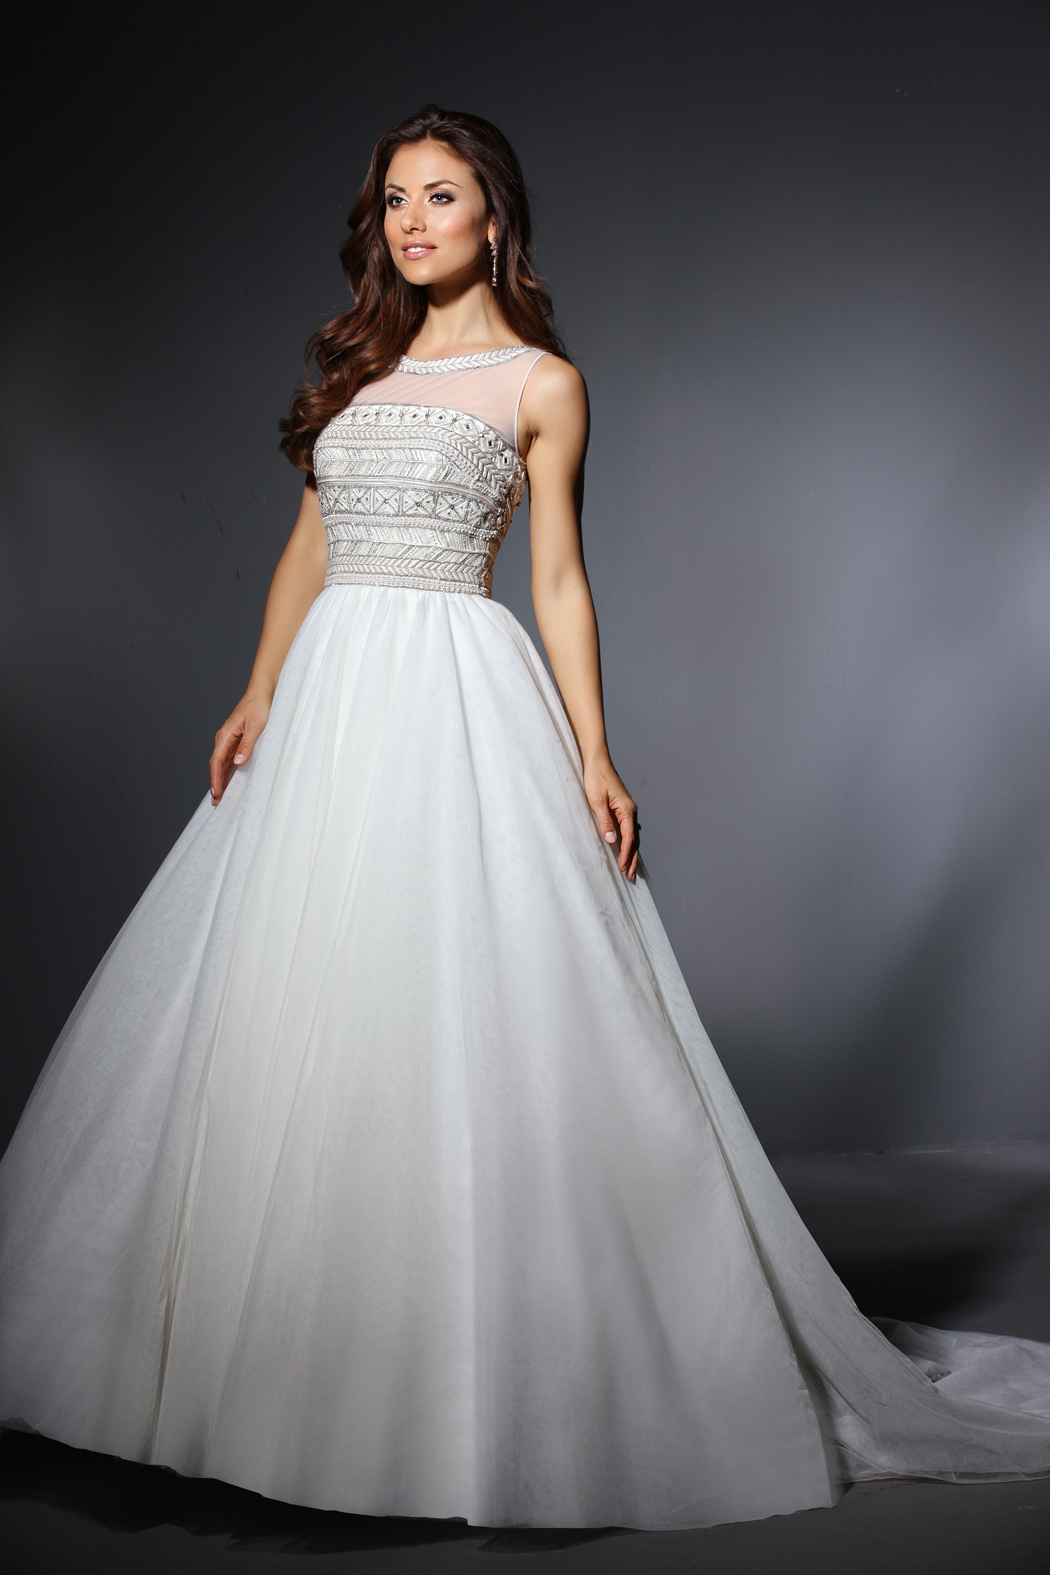 Handmade Wedding Dresses Chicago : Wedding dresses in chicago